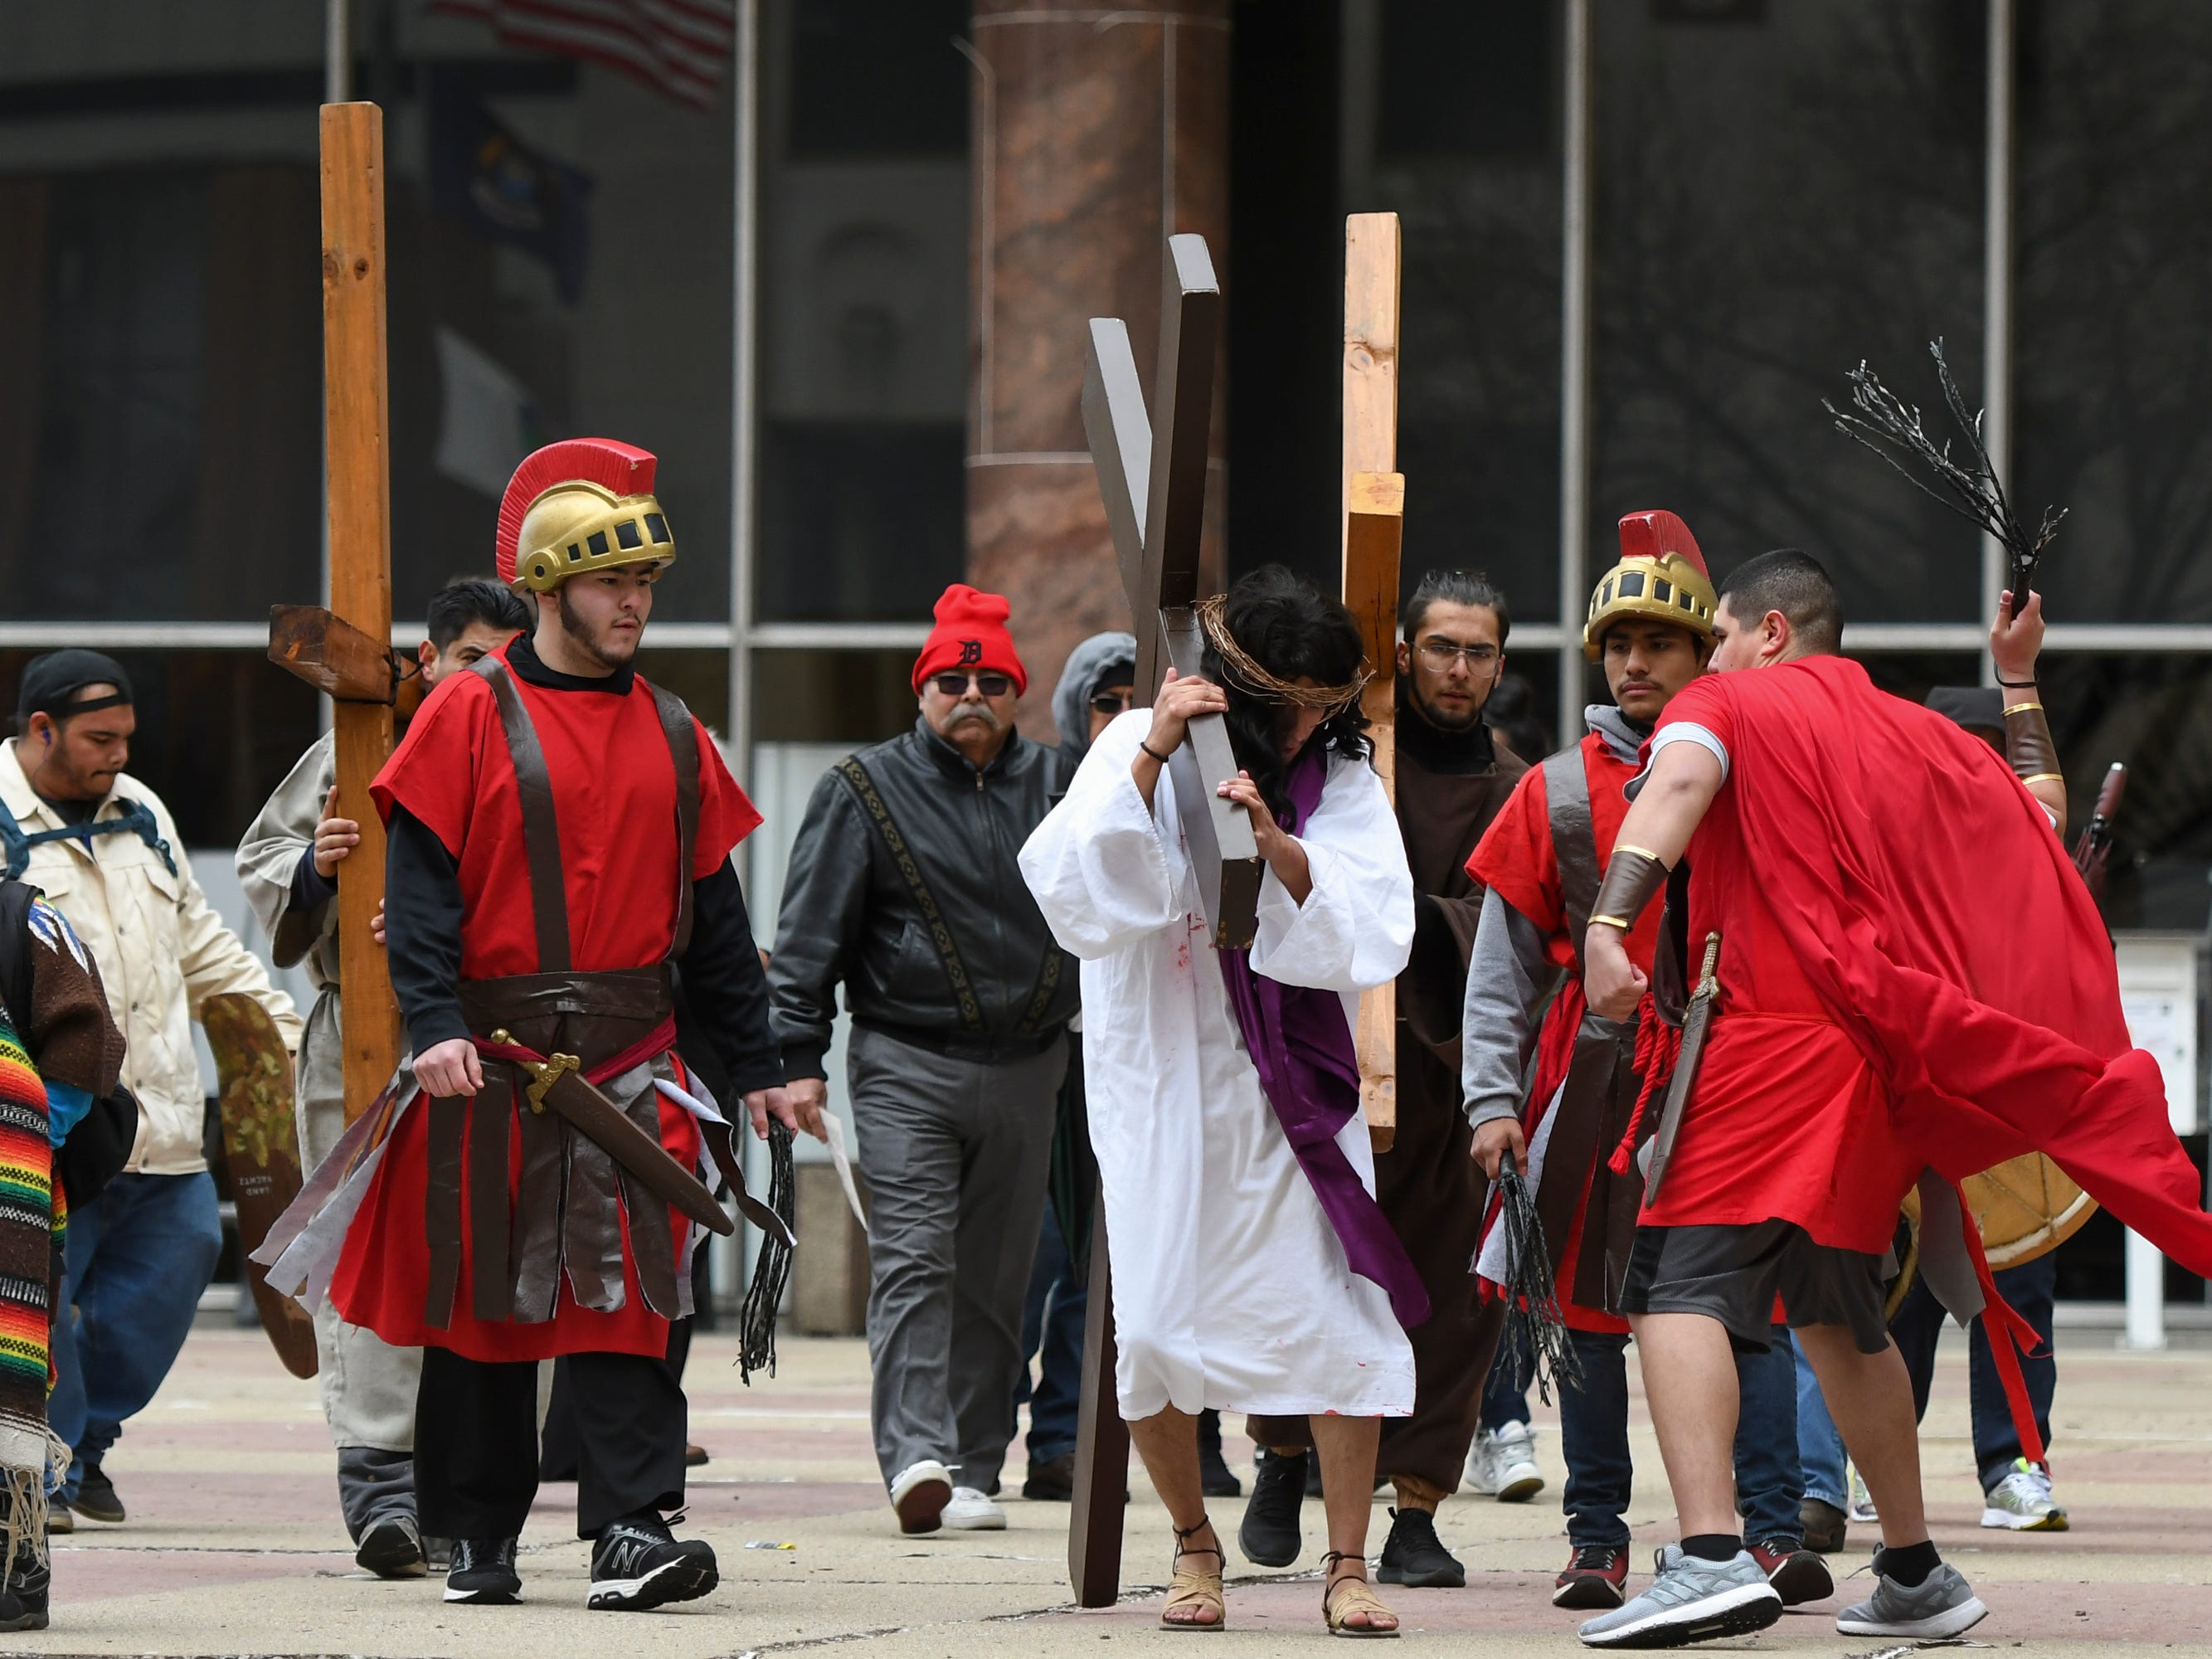 """David Ponce, portraying Jesus, carries a cross as part of Cristo Rey's """"Stations of the Cross,"""" Friday, April 19, 2019.  The service started on the steps of the Capitol with the reenactment of Jesus being condemned to death and concluded at the Cristo Rey Community Center with the crucifixion followed by a Good Friday service."""